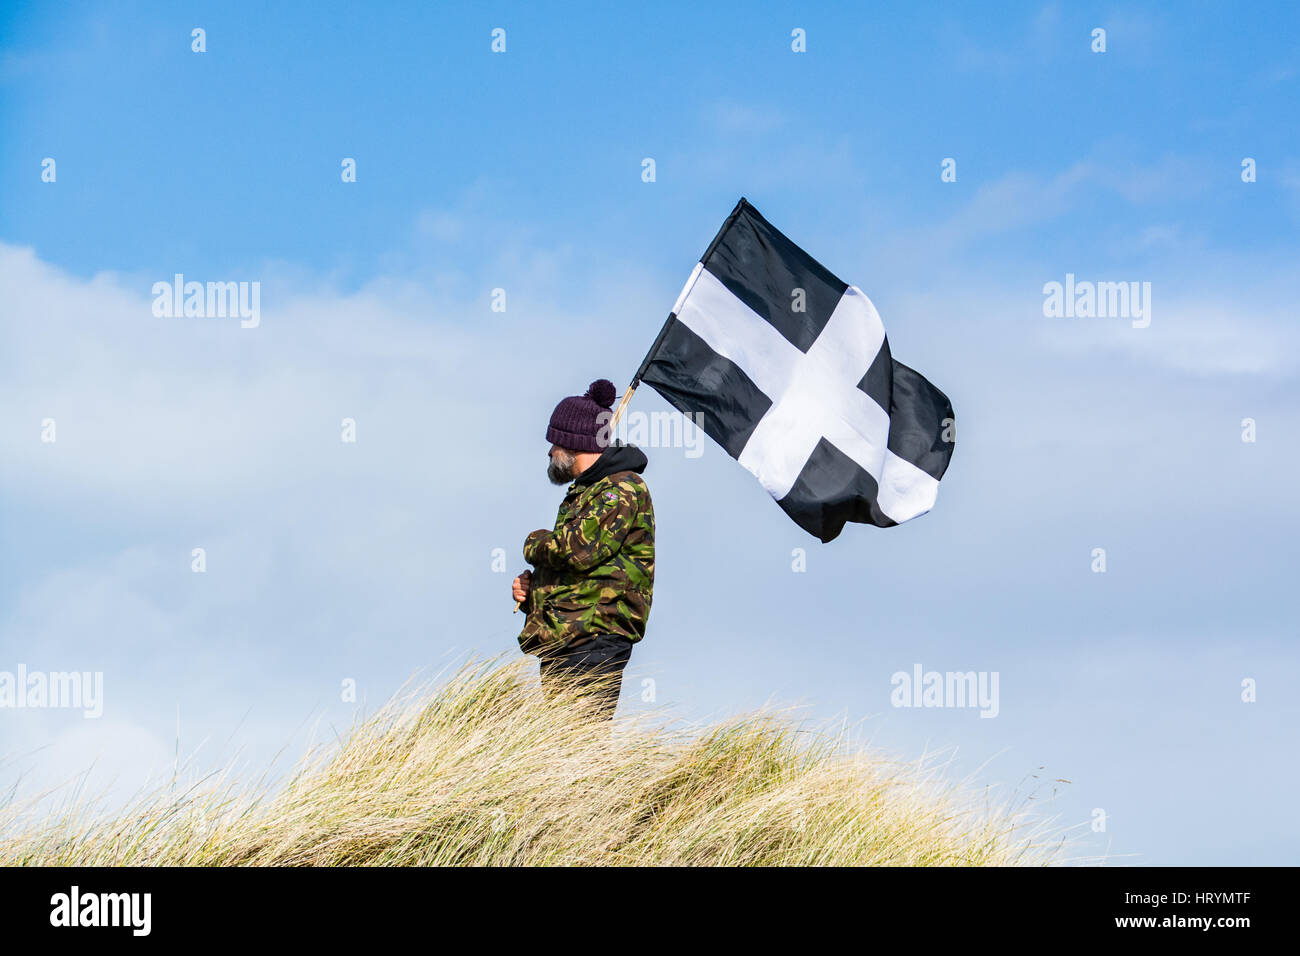 Perran Sands, Cornwall, UK. 5th March 2017. The annual St Pirans play telling the story of St Piran, the Patron - Stock Image